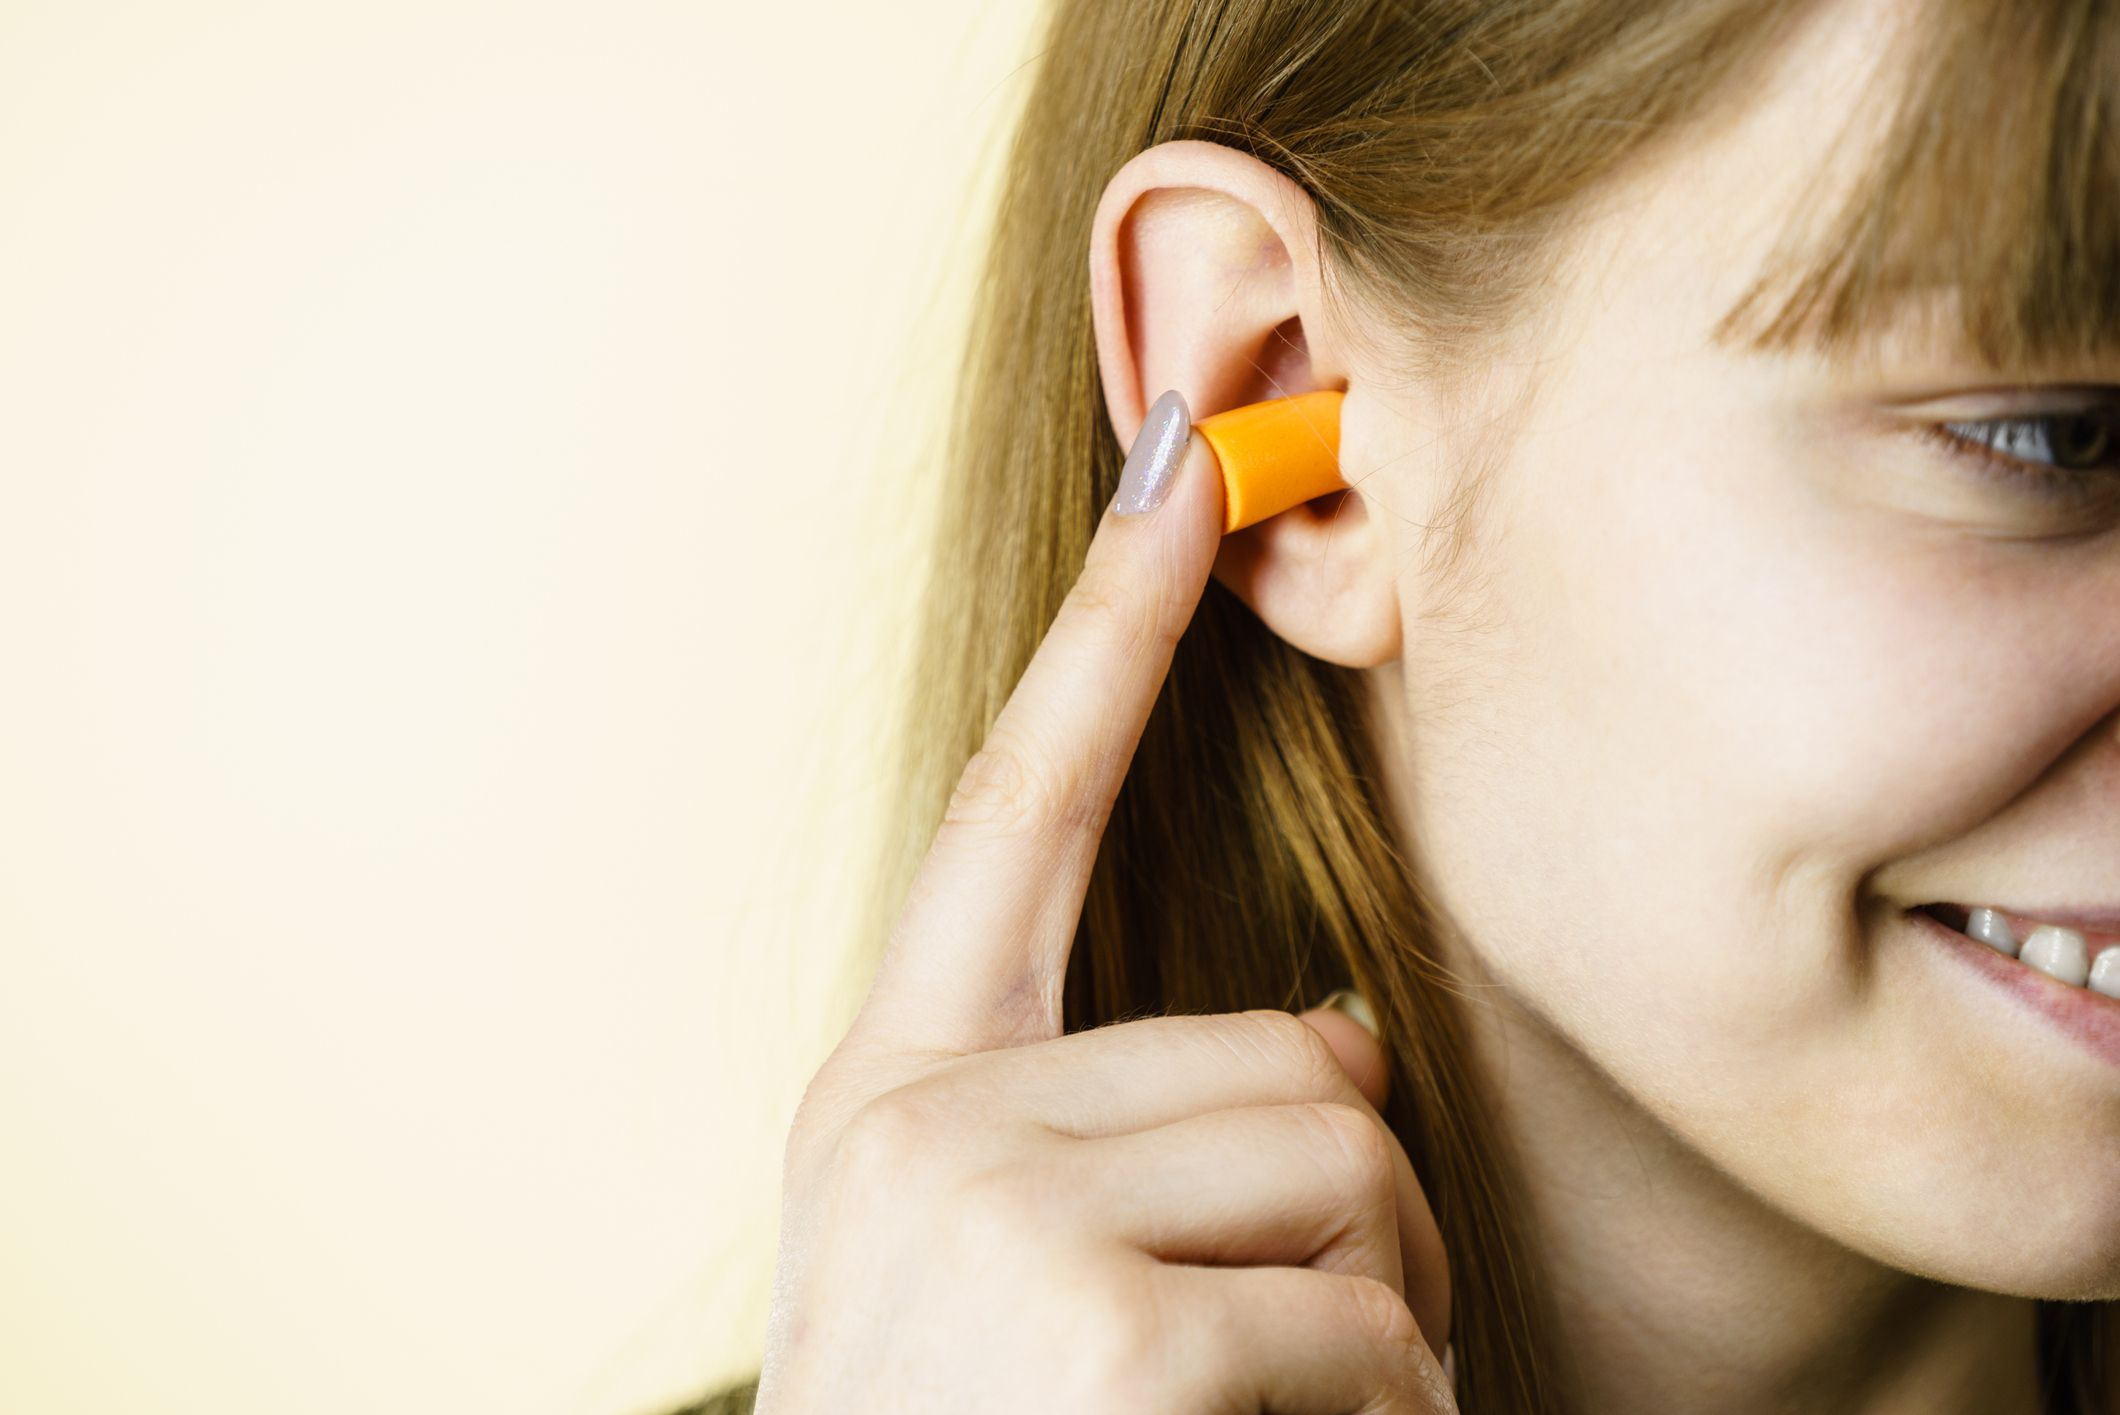 Howard Leight ear plugs